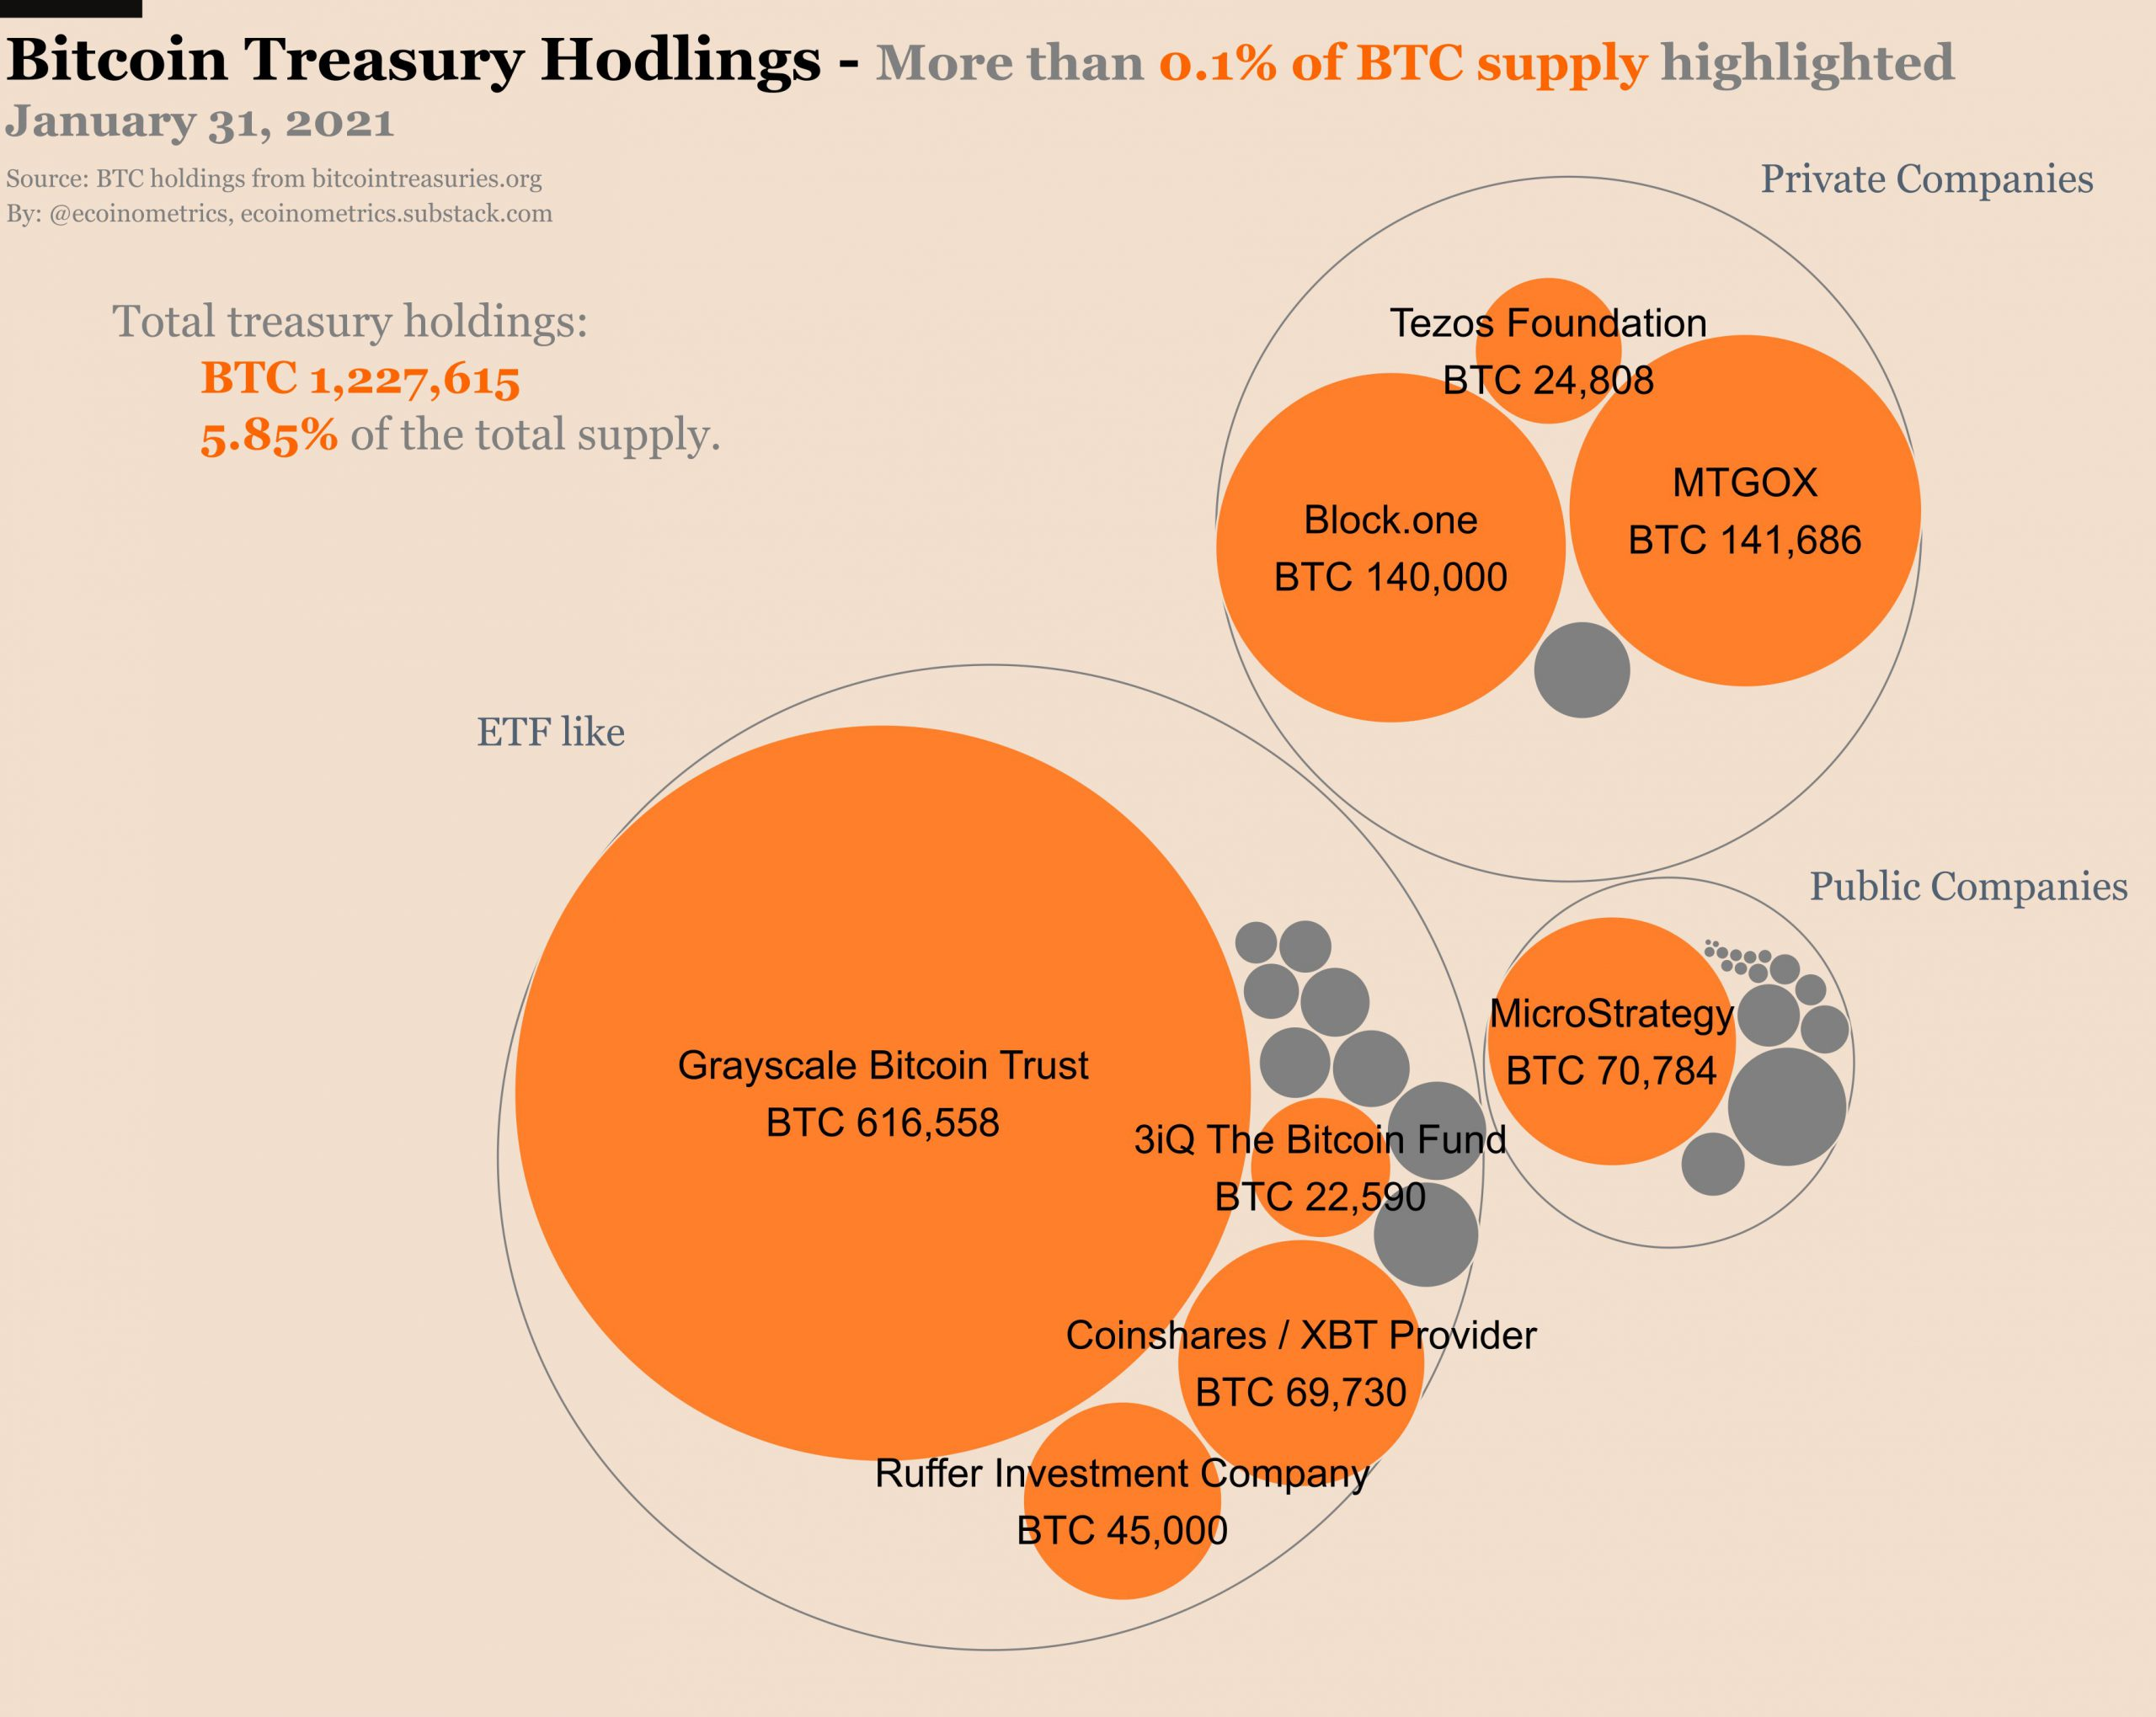 Treasuries now hold 5.85% of Bitcoin's supply